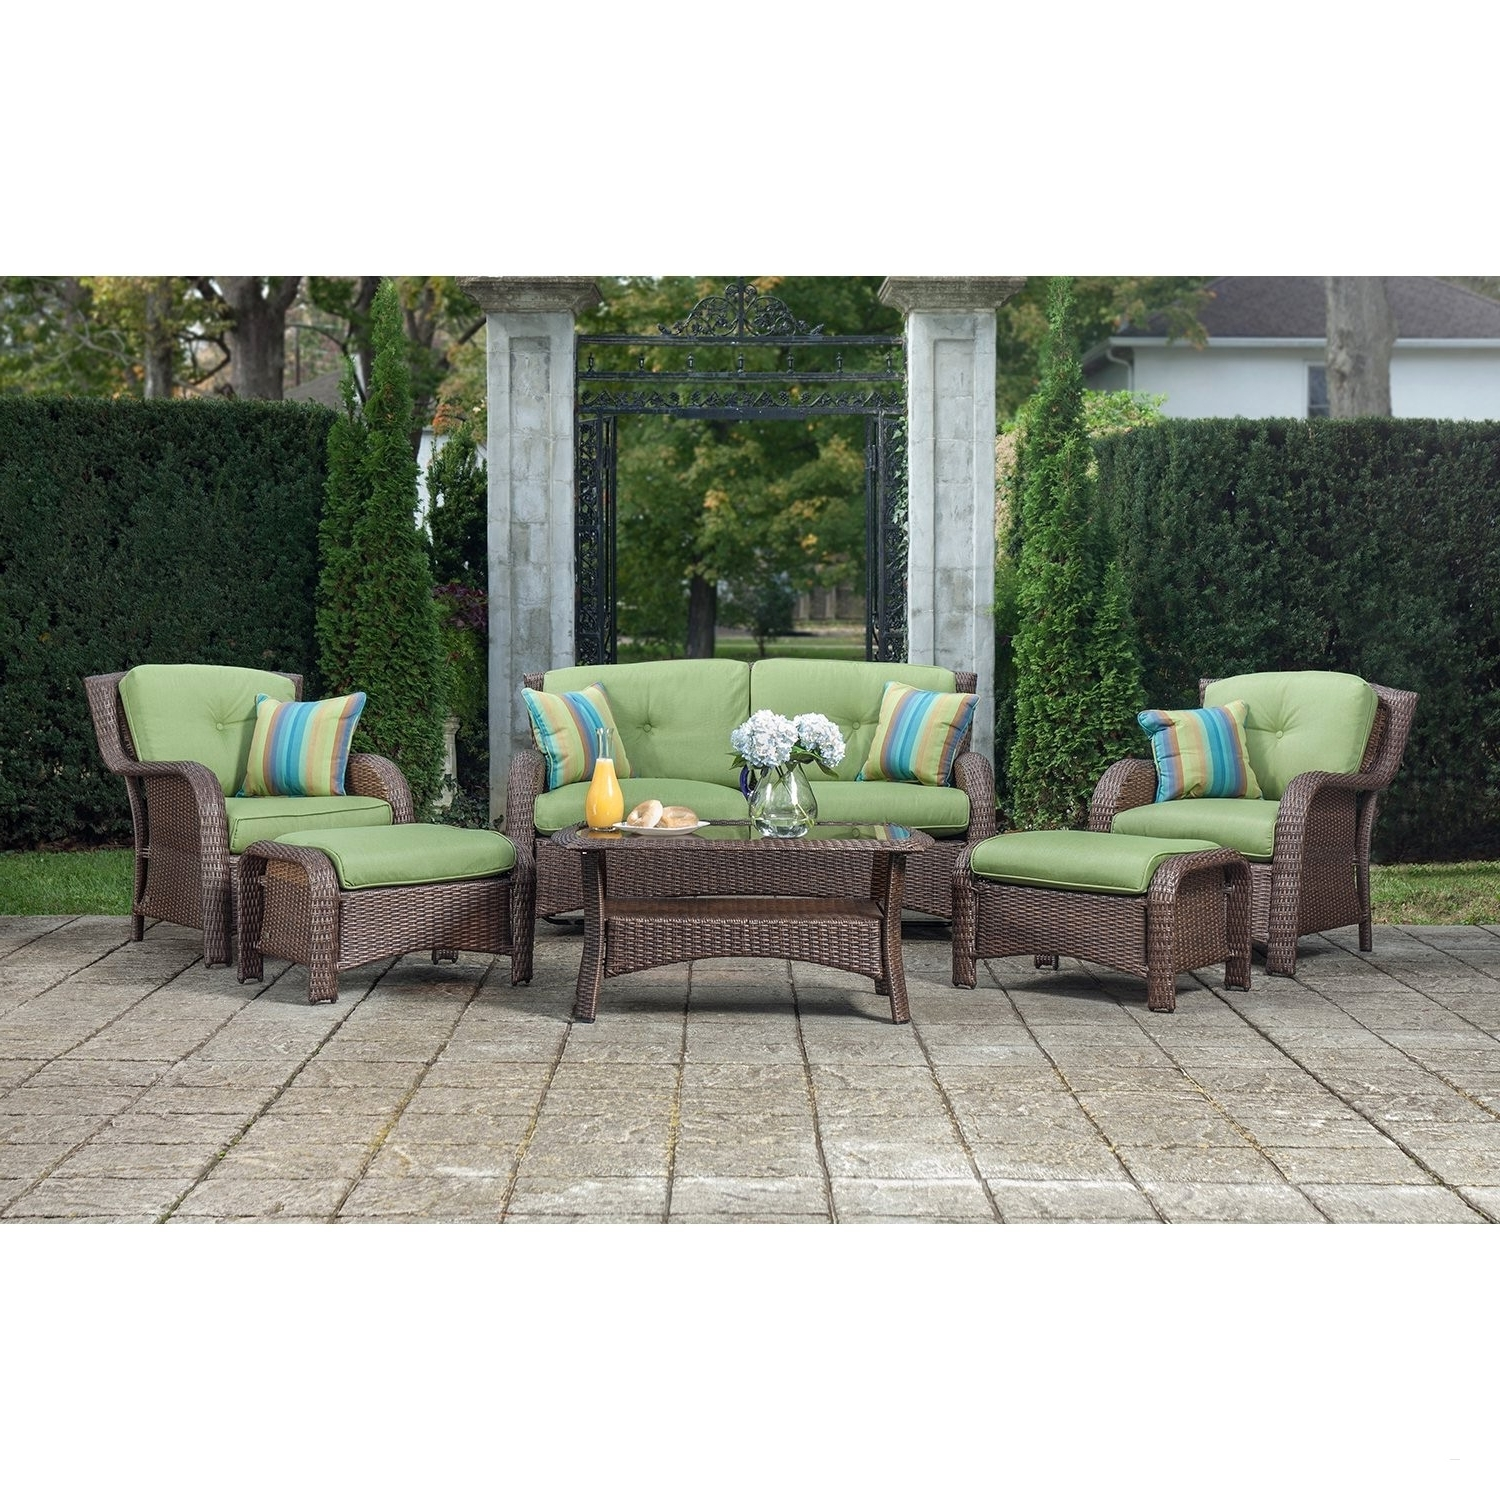 Lazy Boy Patio Conversation Sets Intended For Most Current Lazy Boy Outdoor Furniture Unique 72 Unique Inexpensive Wicker (View 8 of 20)